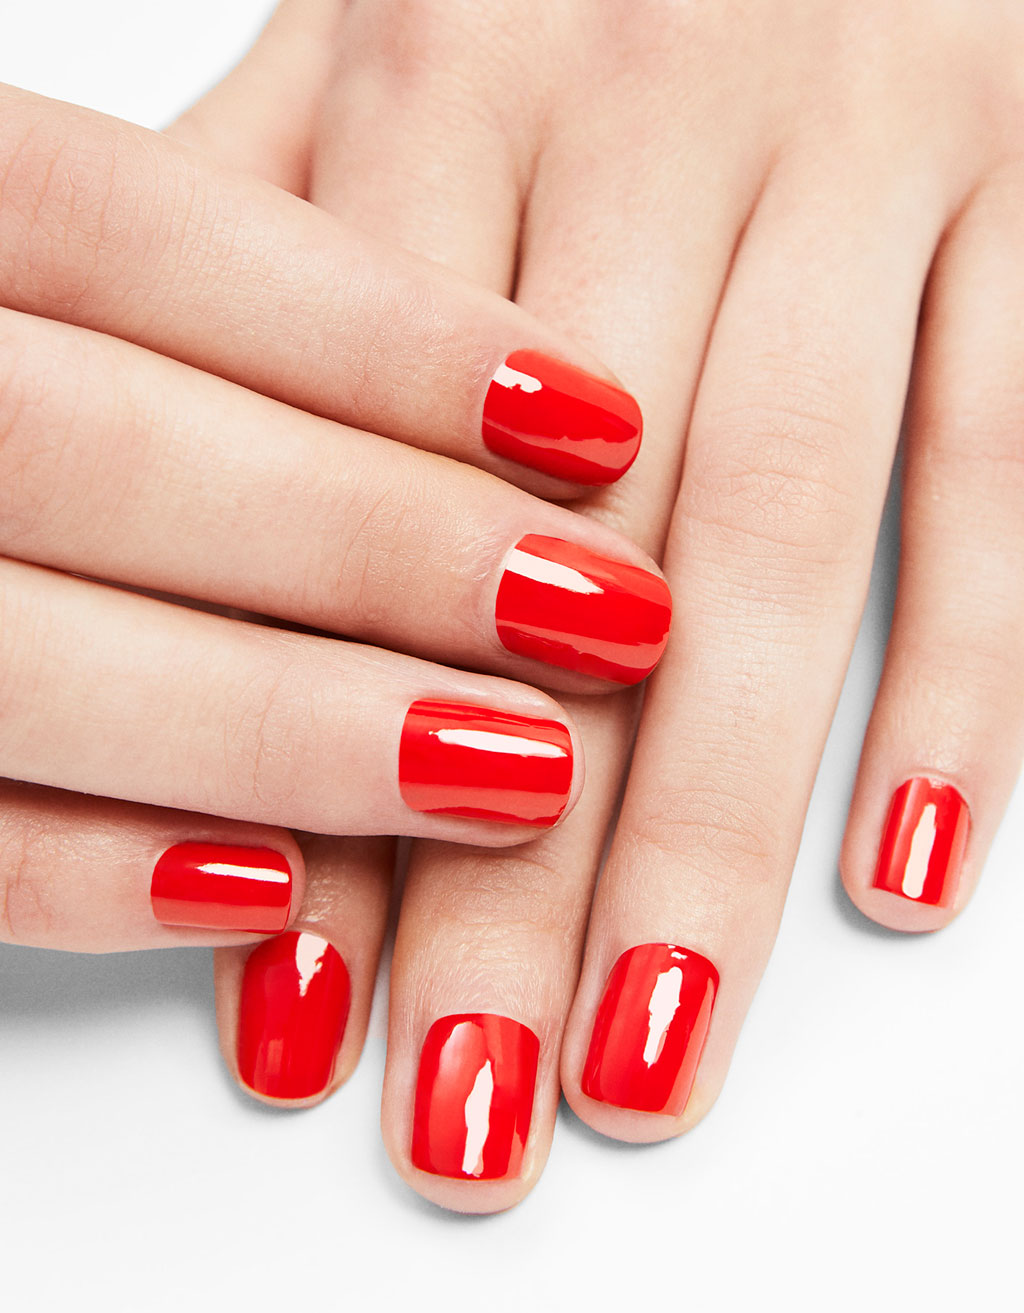 Super Glossy Gel Effect Nail Polish #lastingbling